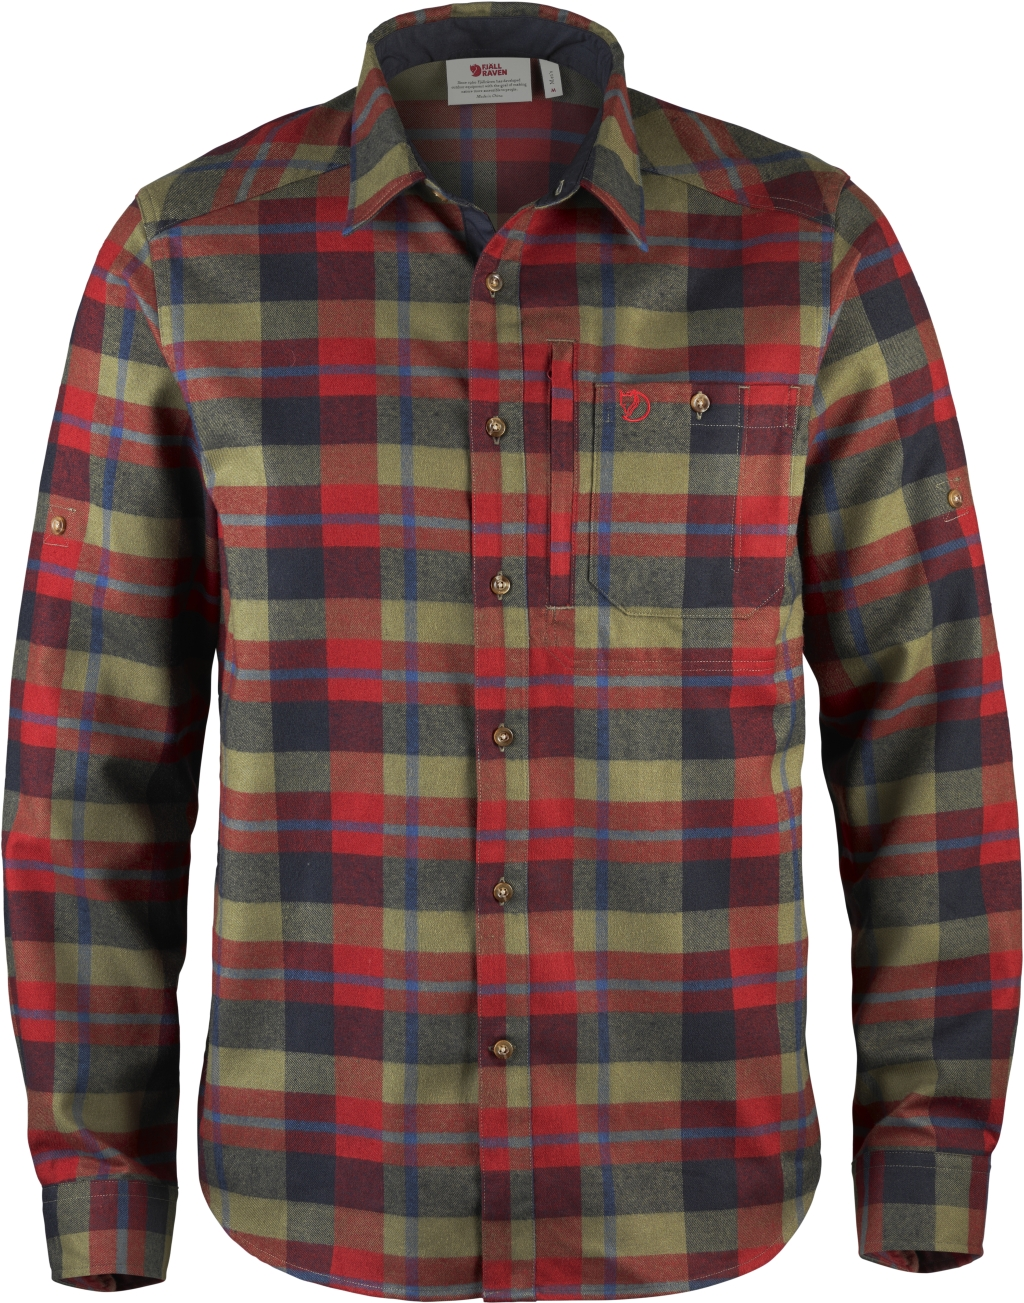 FjallRaven Fjallglim Shirt Deep Red-30